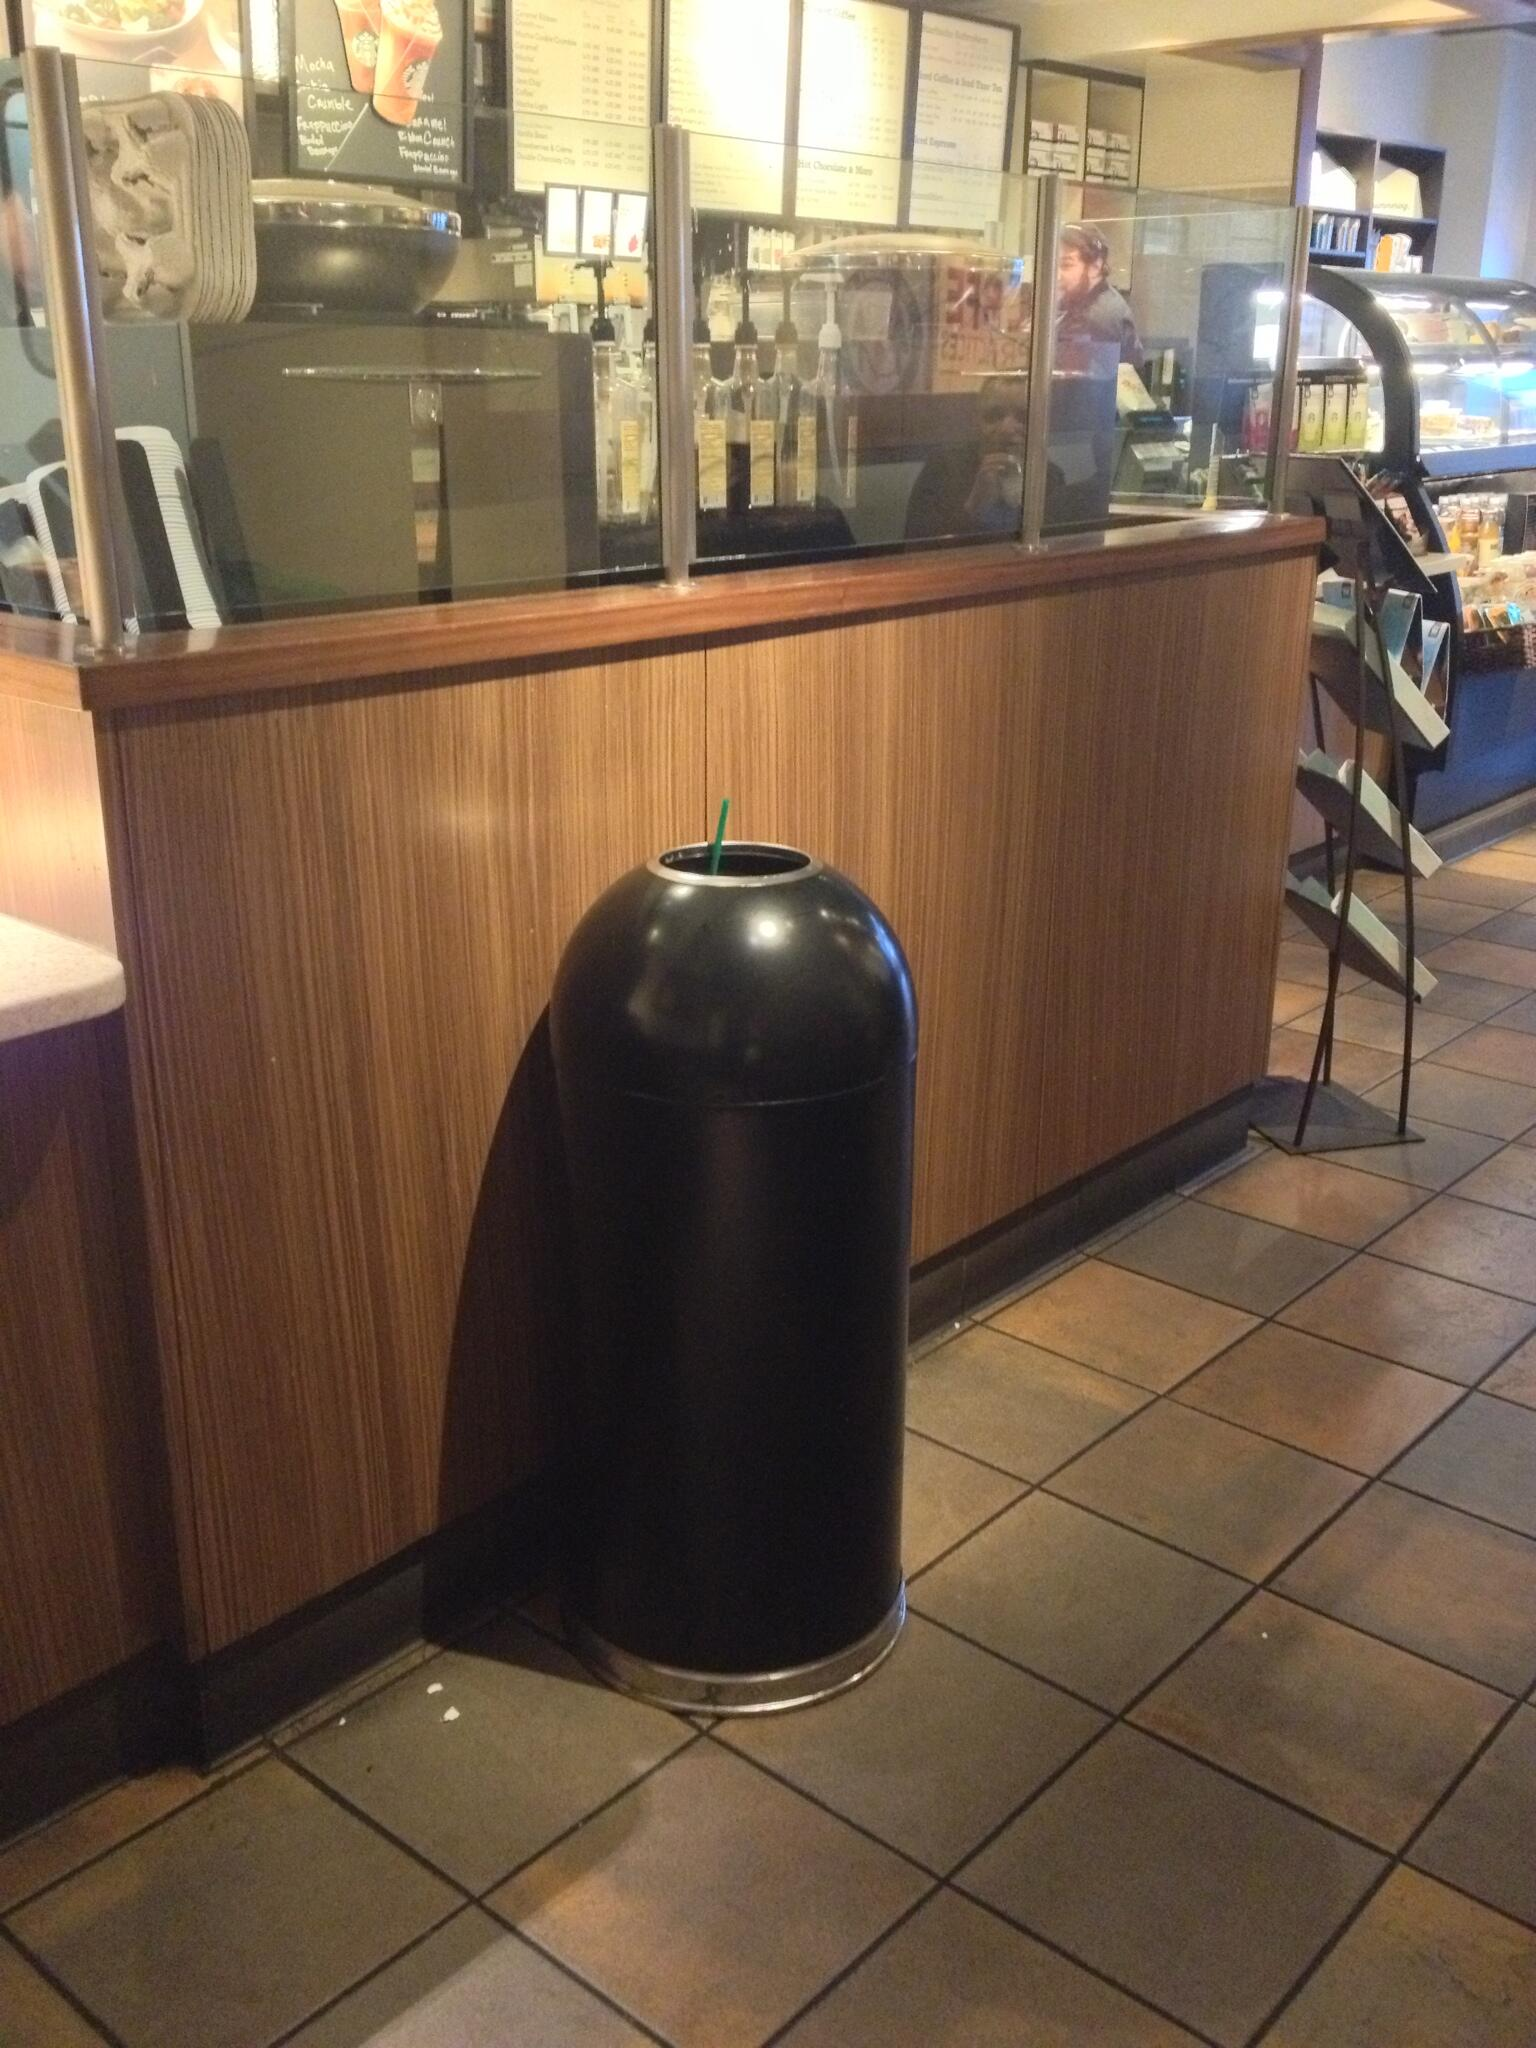 Spotted the new Mac Pro in Starbucks just now http://t.co/EwoFlqgYPD